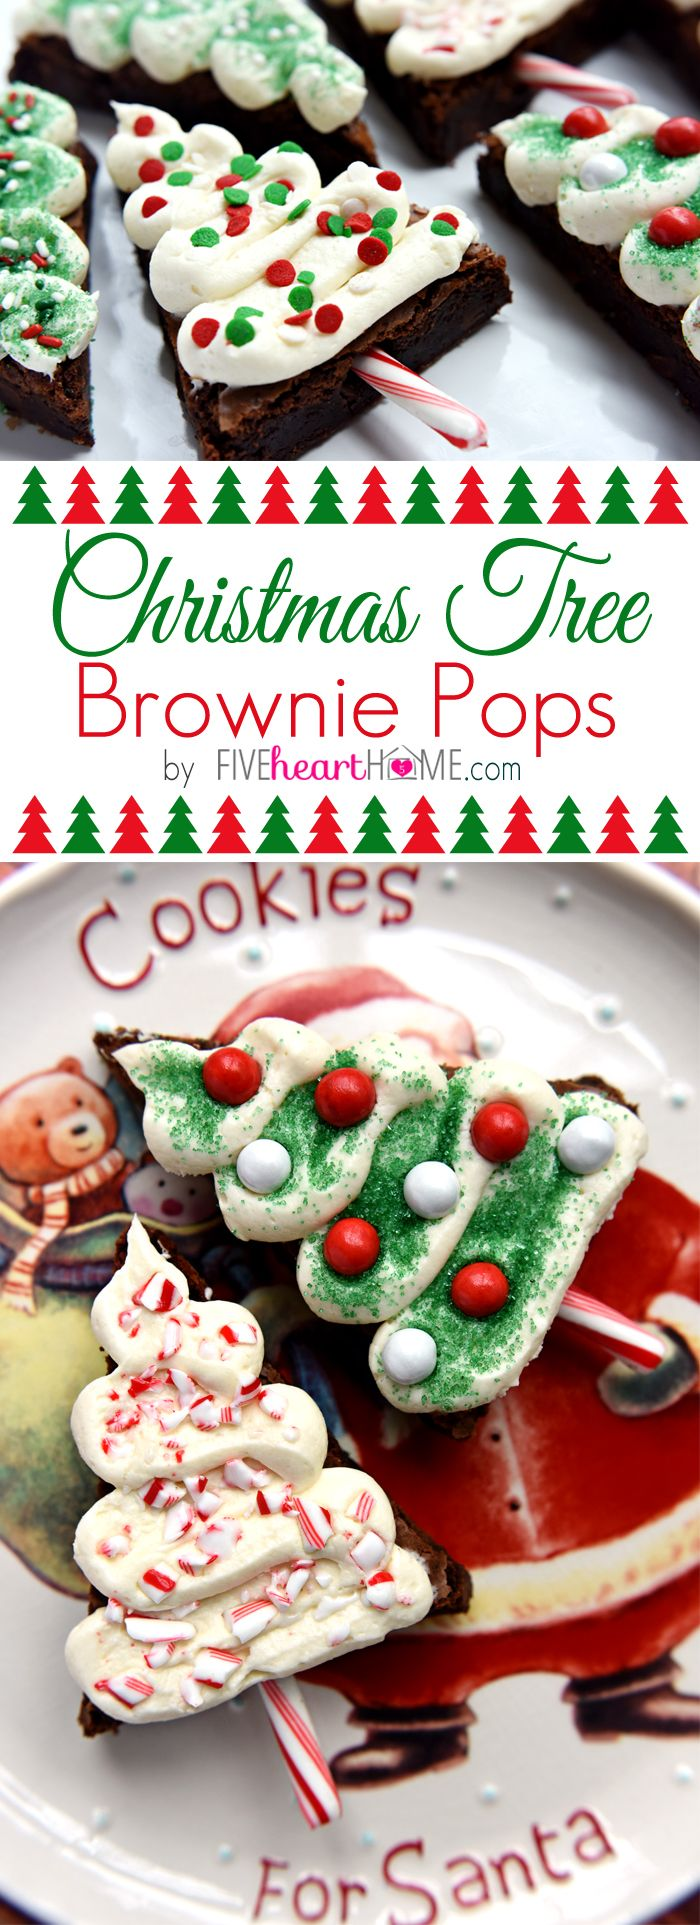 Christmas-Tree-Brownie-Pops-Christmas-Cookies-for-Santa-by-Five-Heart-Home_700pxTitleCollage